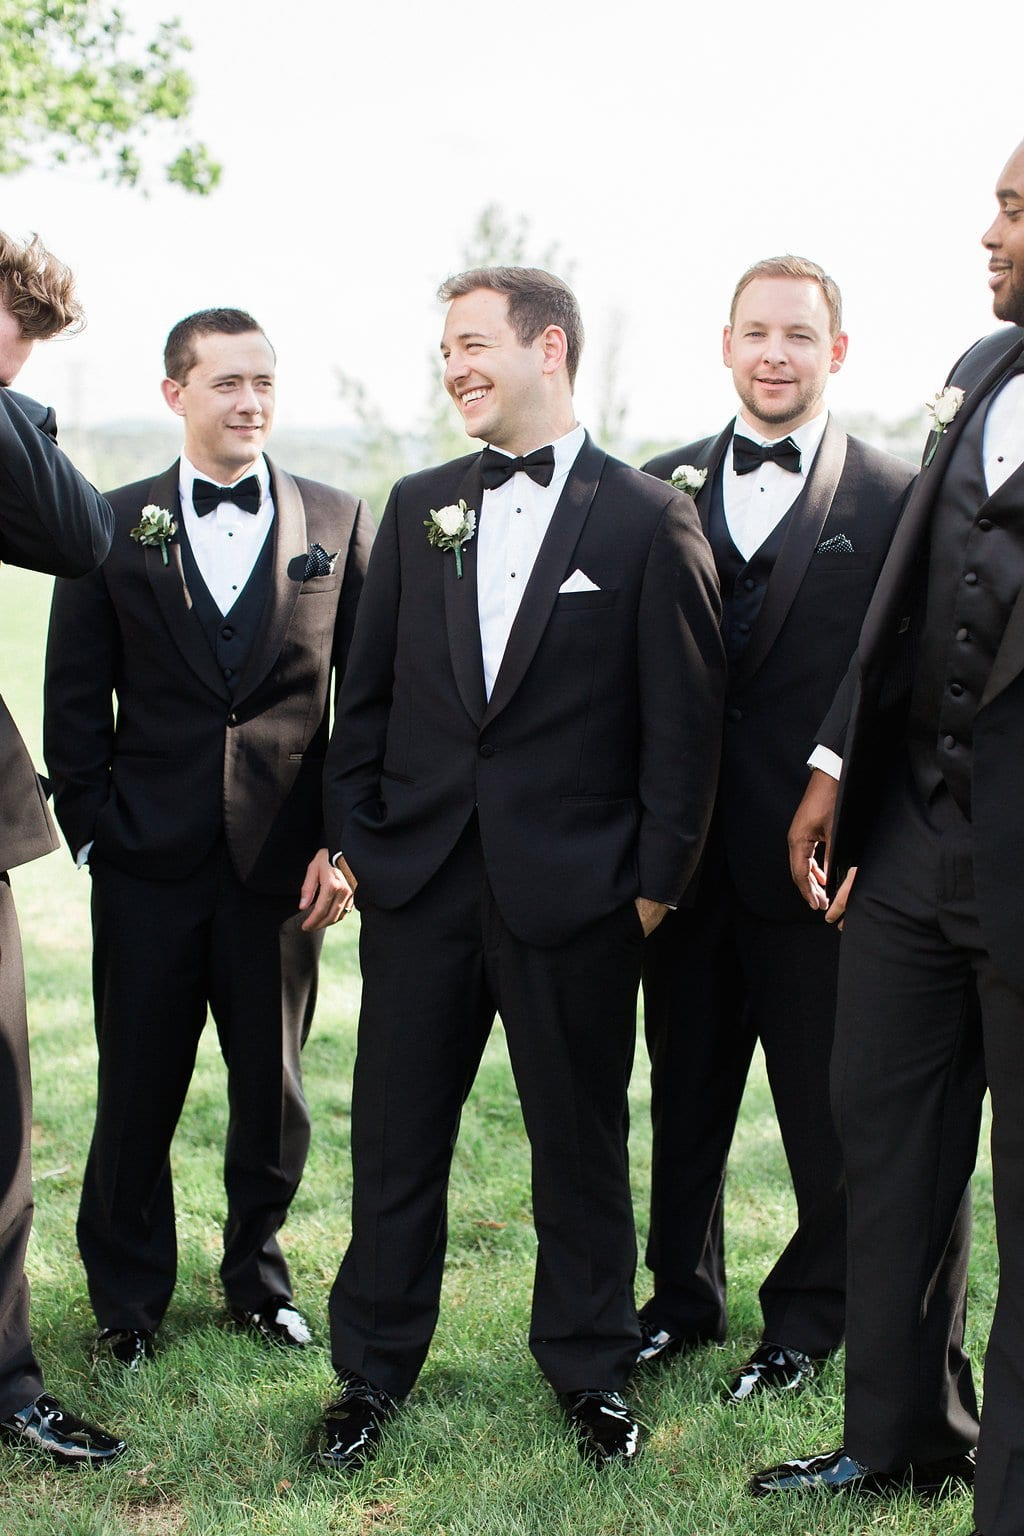 Groom laughing and walking with groomsman